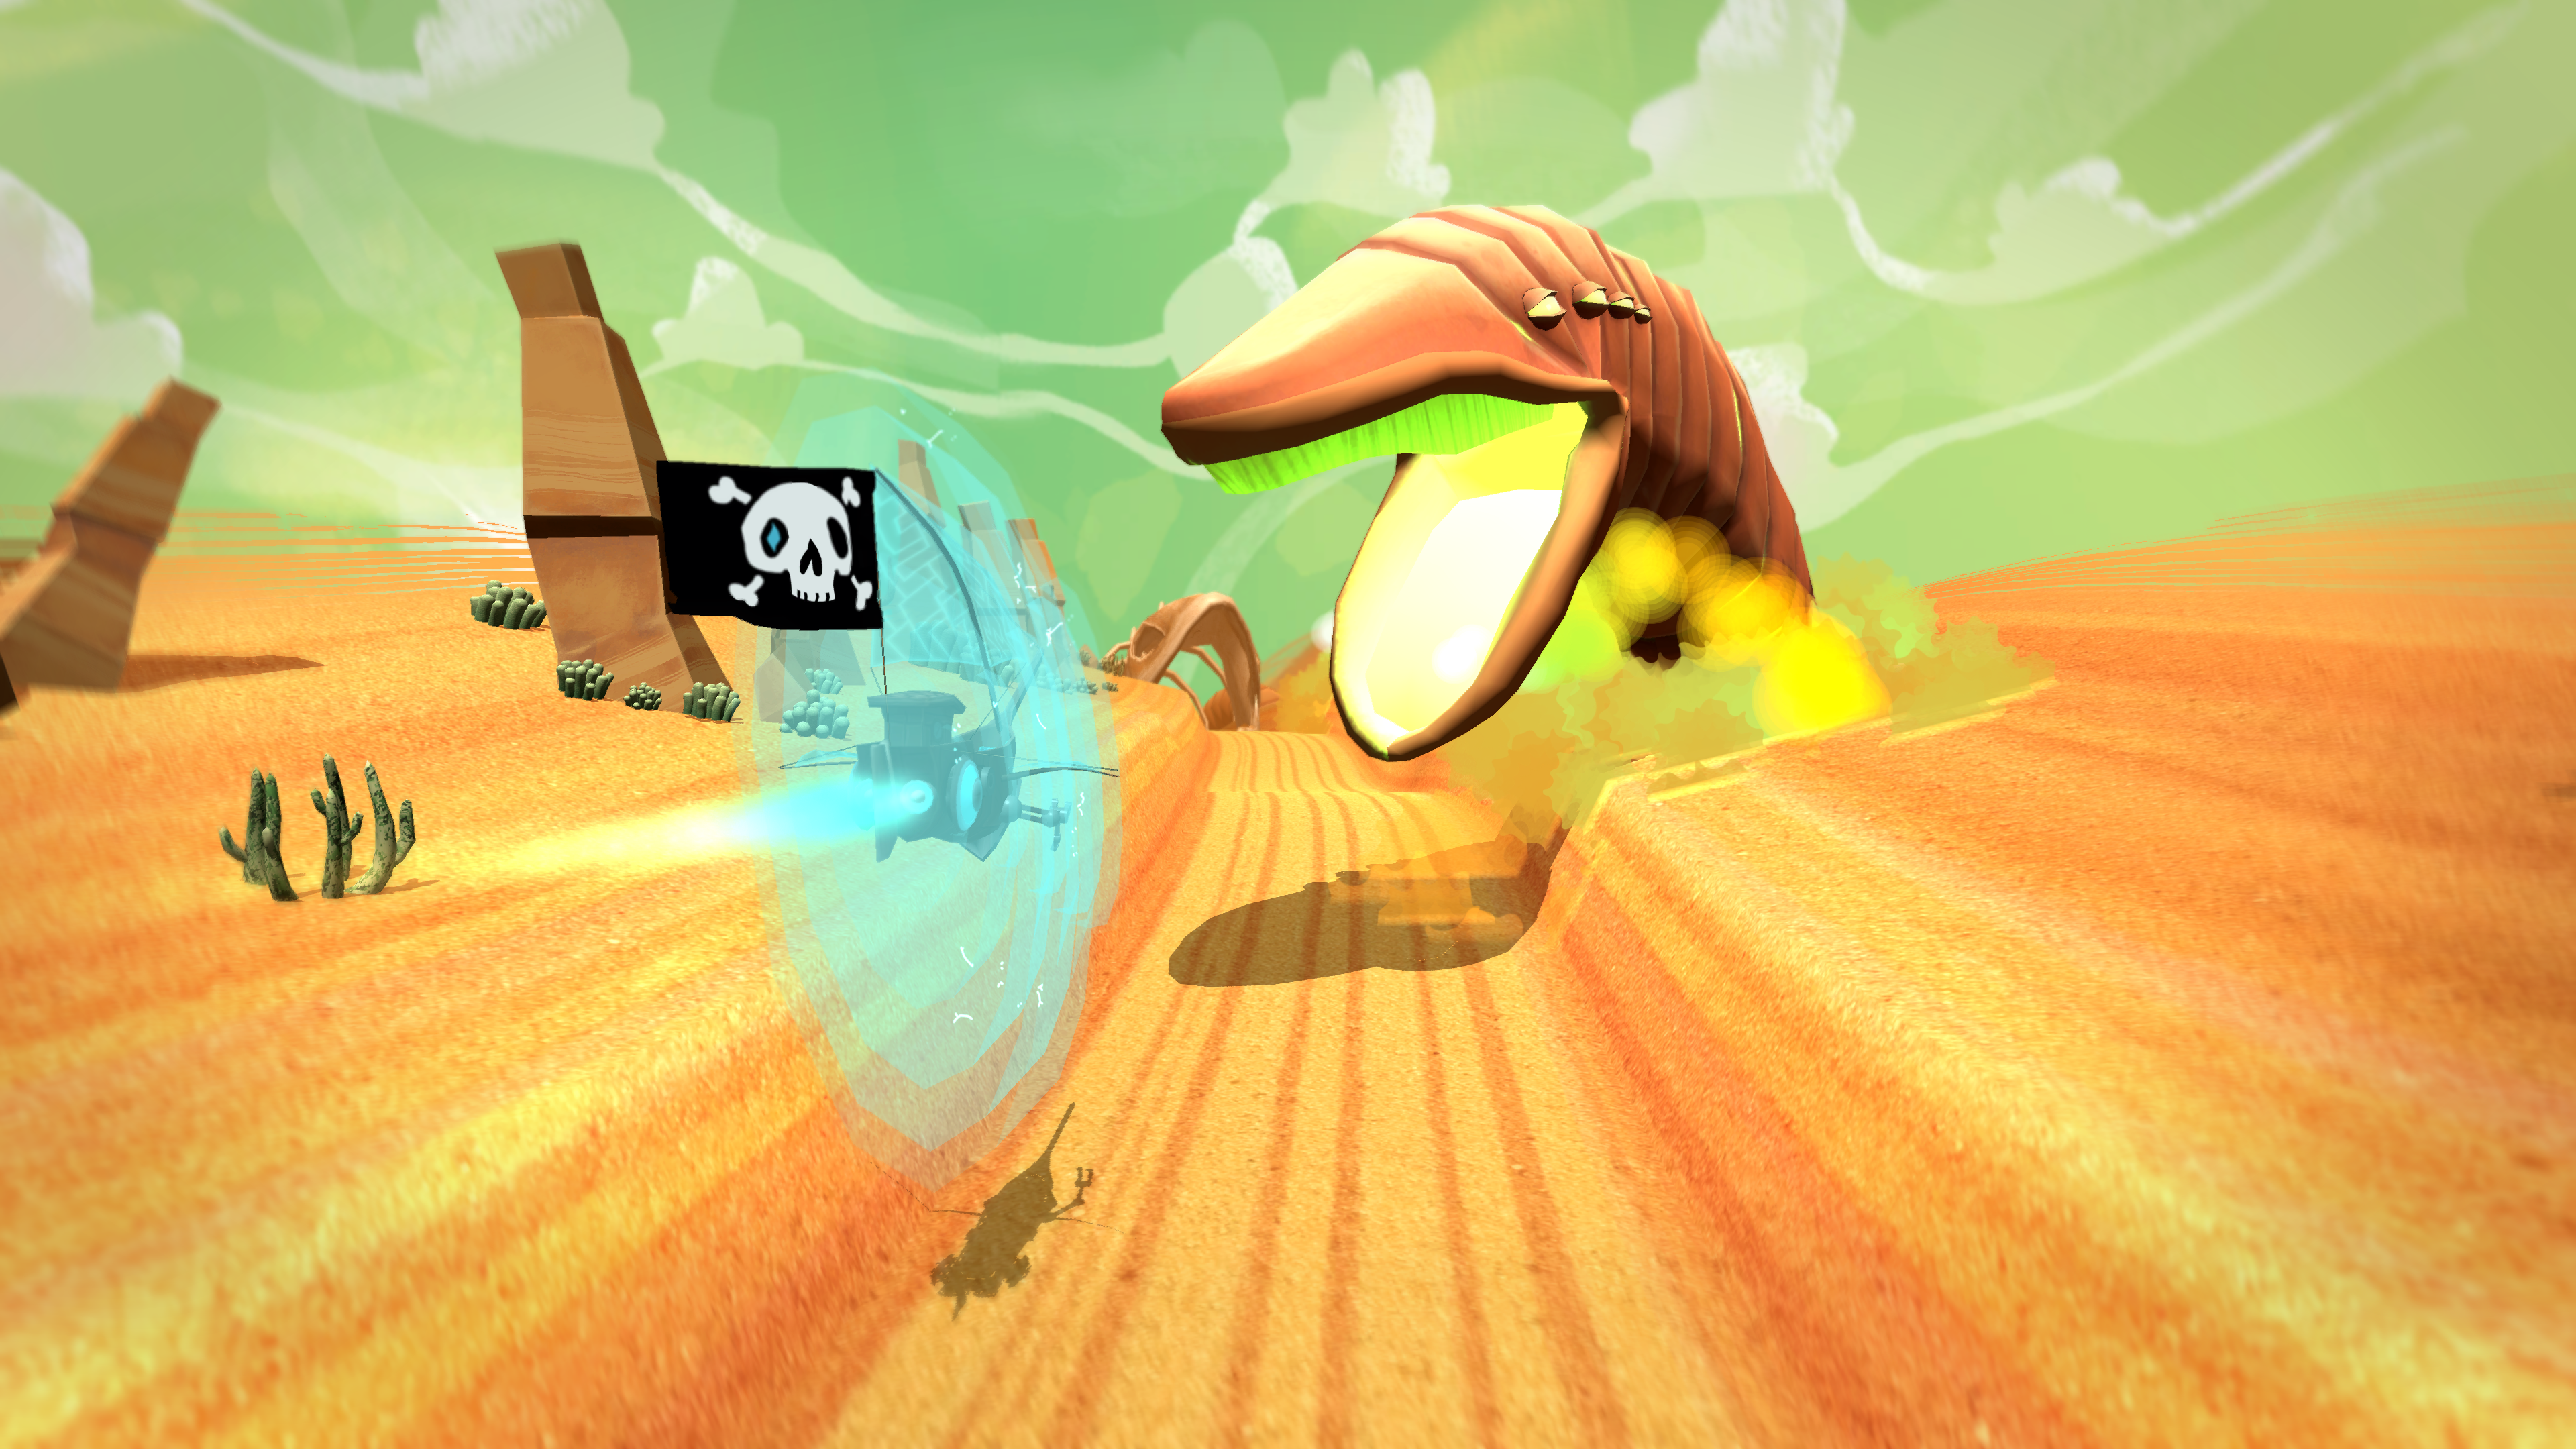 The game itself is about a flying in a space pirate ship on a desert planet, searching for precious gemstones.